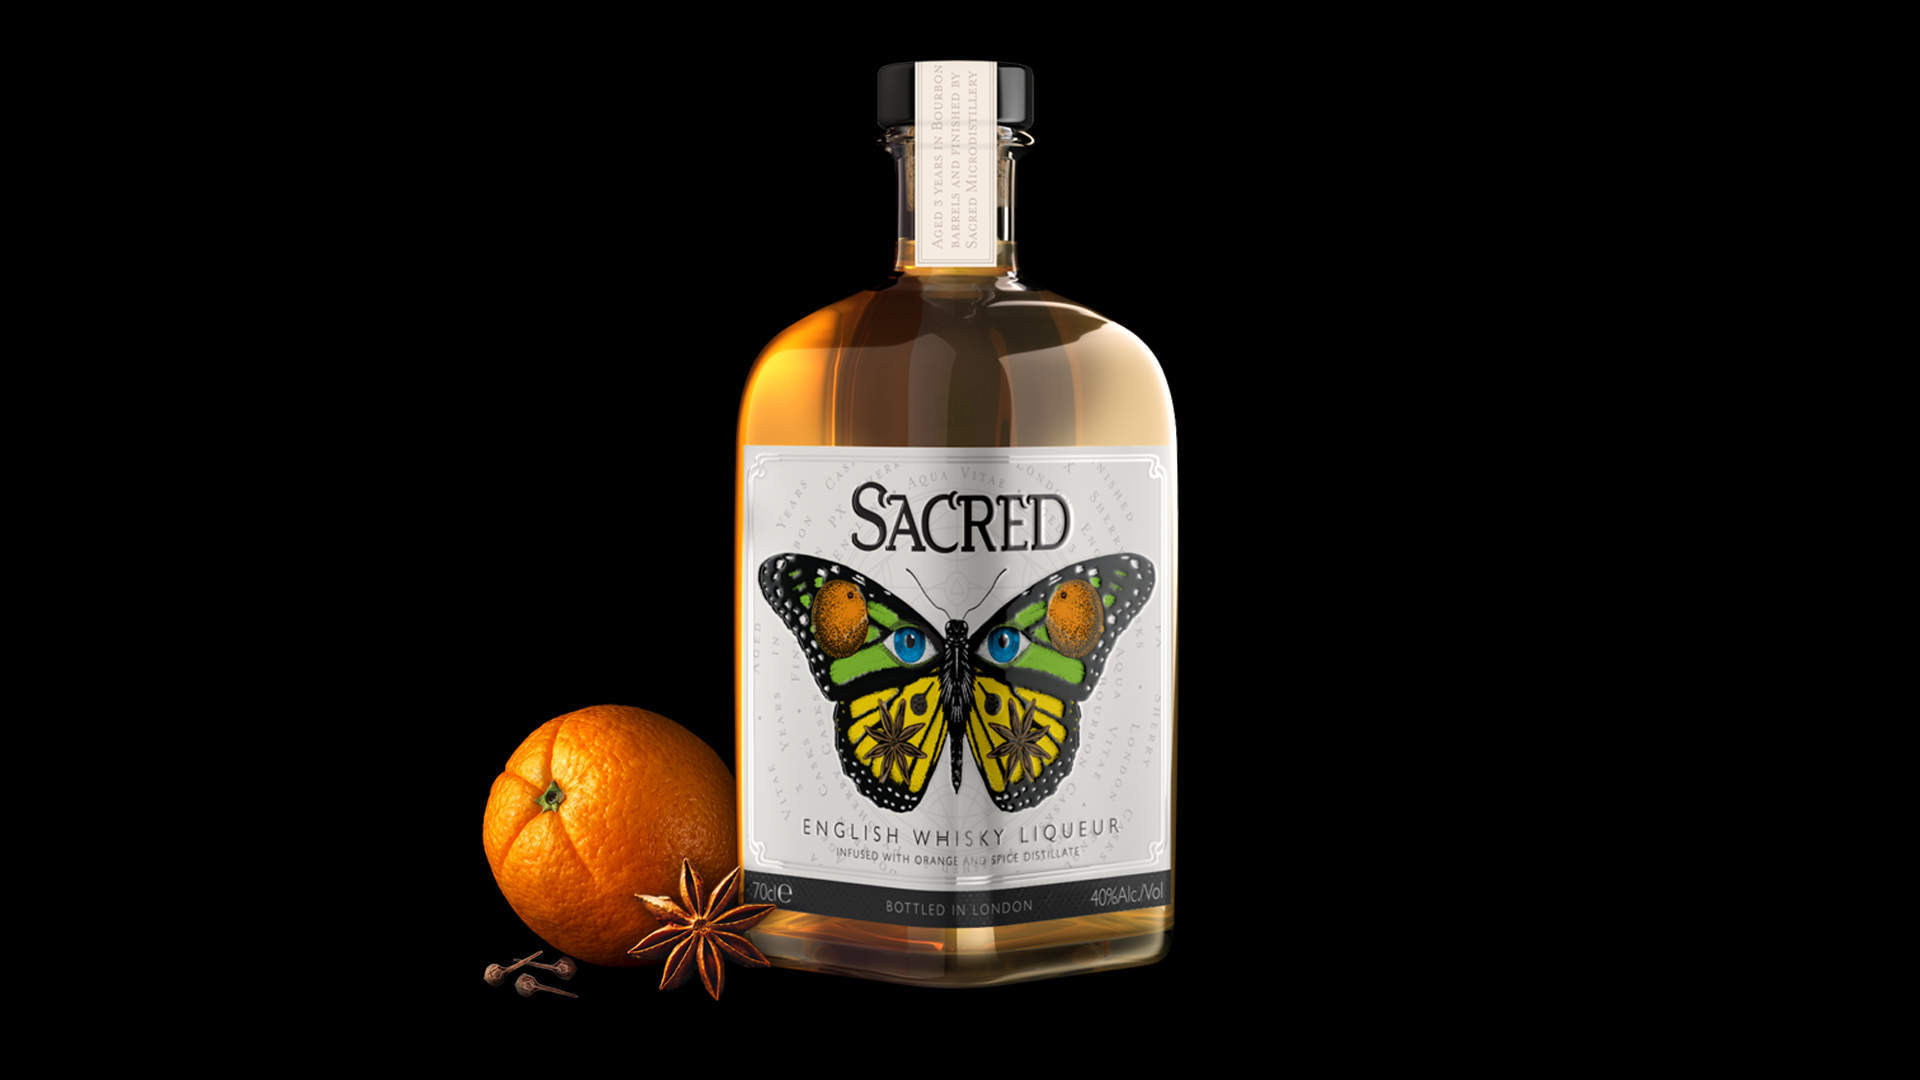 Hart & Jones create brand identity and packaging for Sacred's category changing, London finished, English Whisky Liqueur